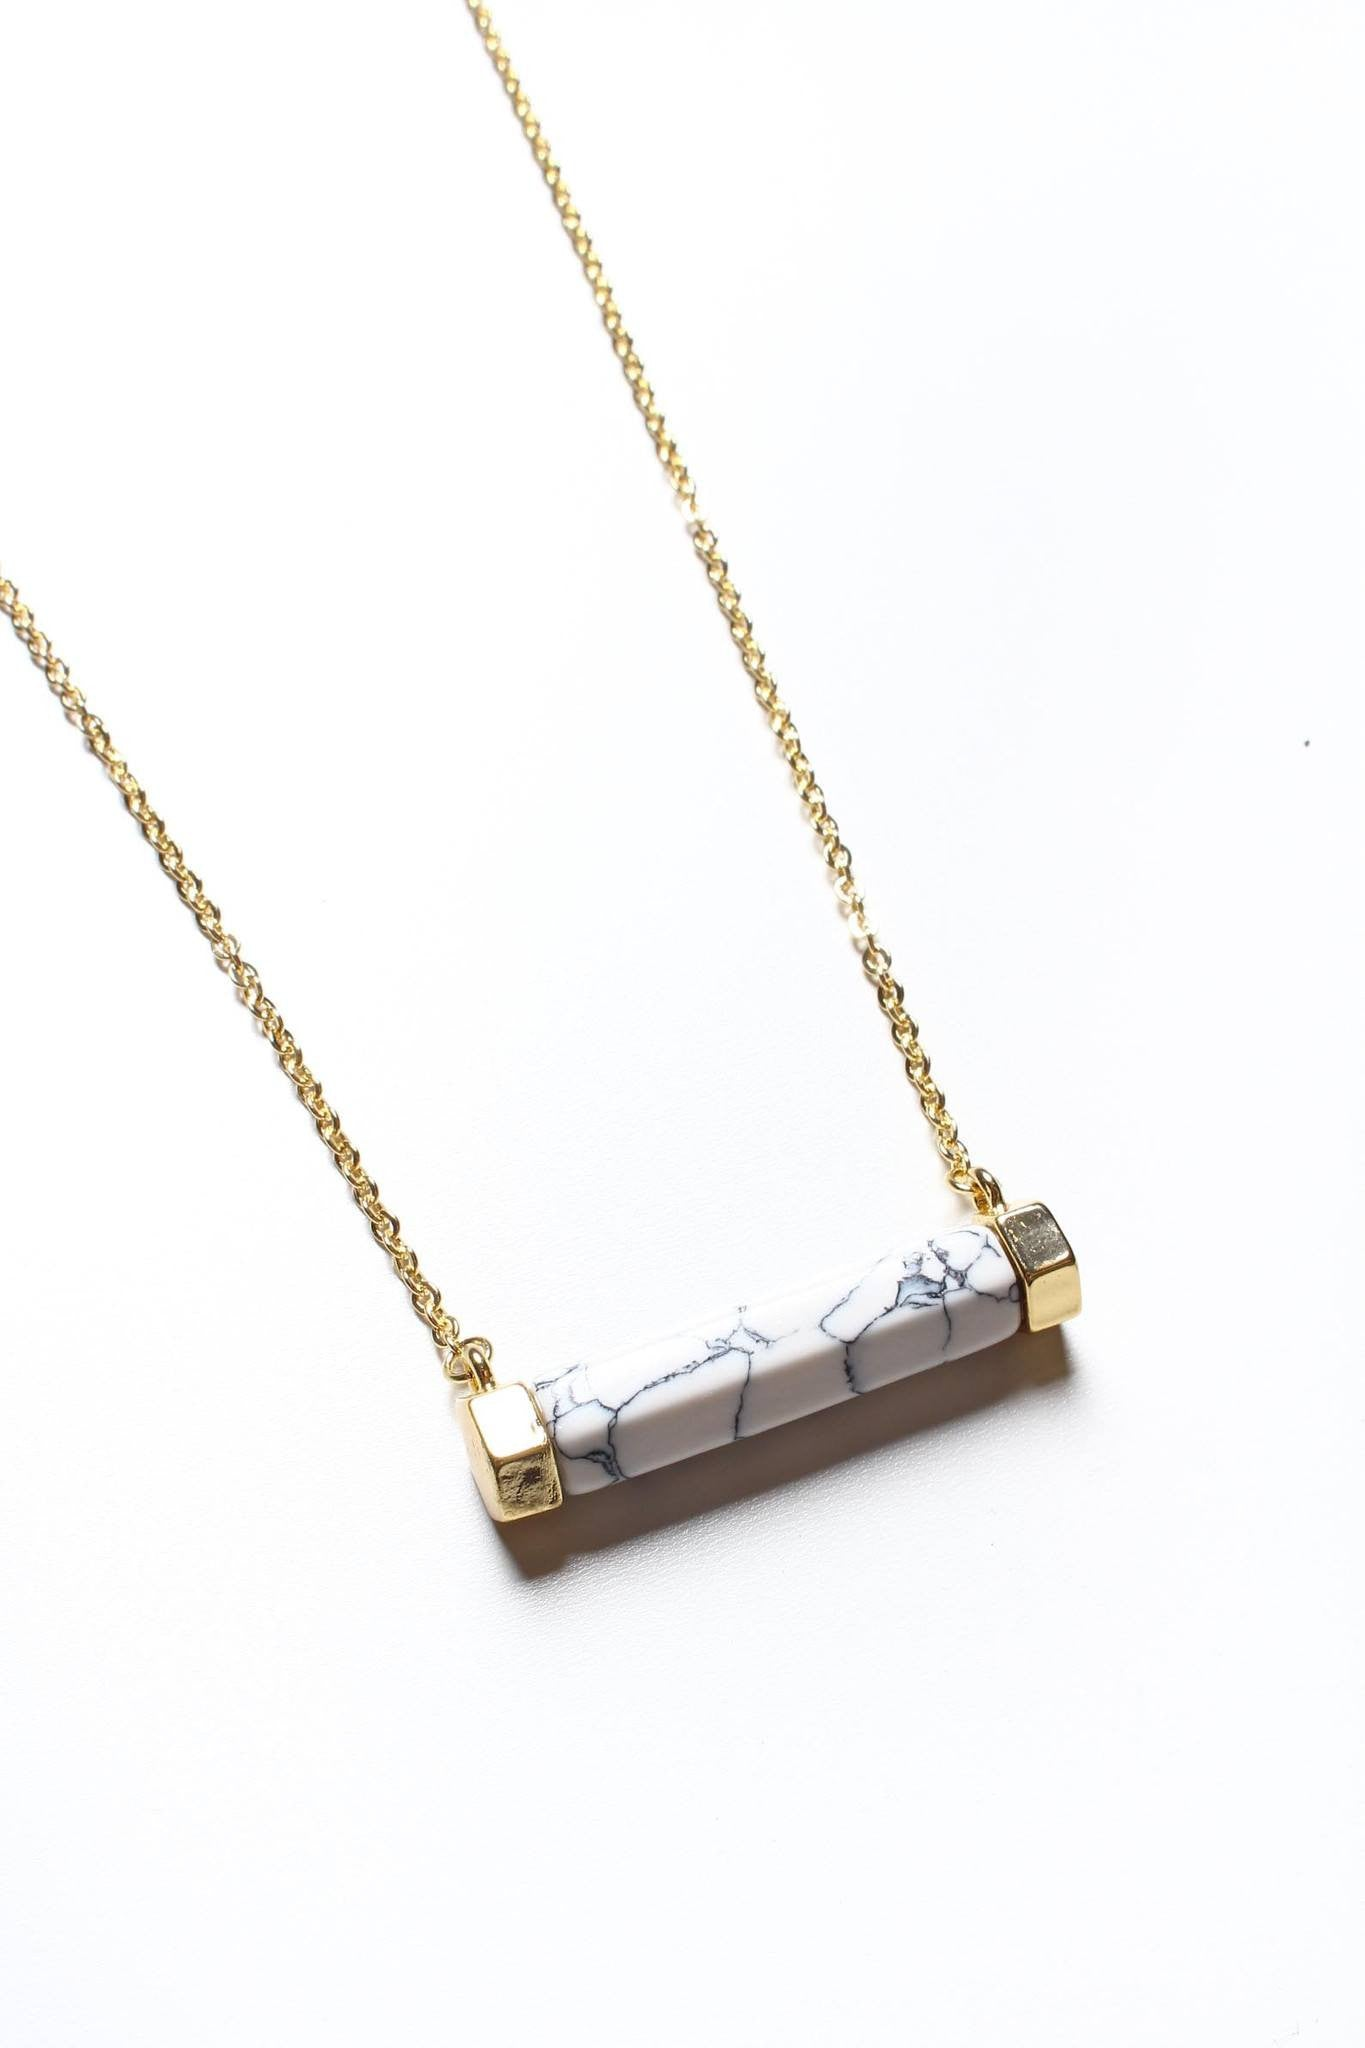 Across The Bar Necklace